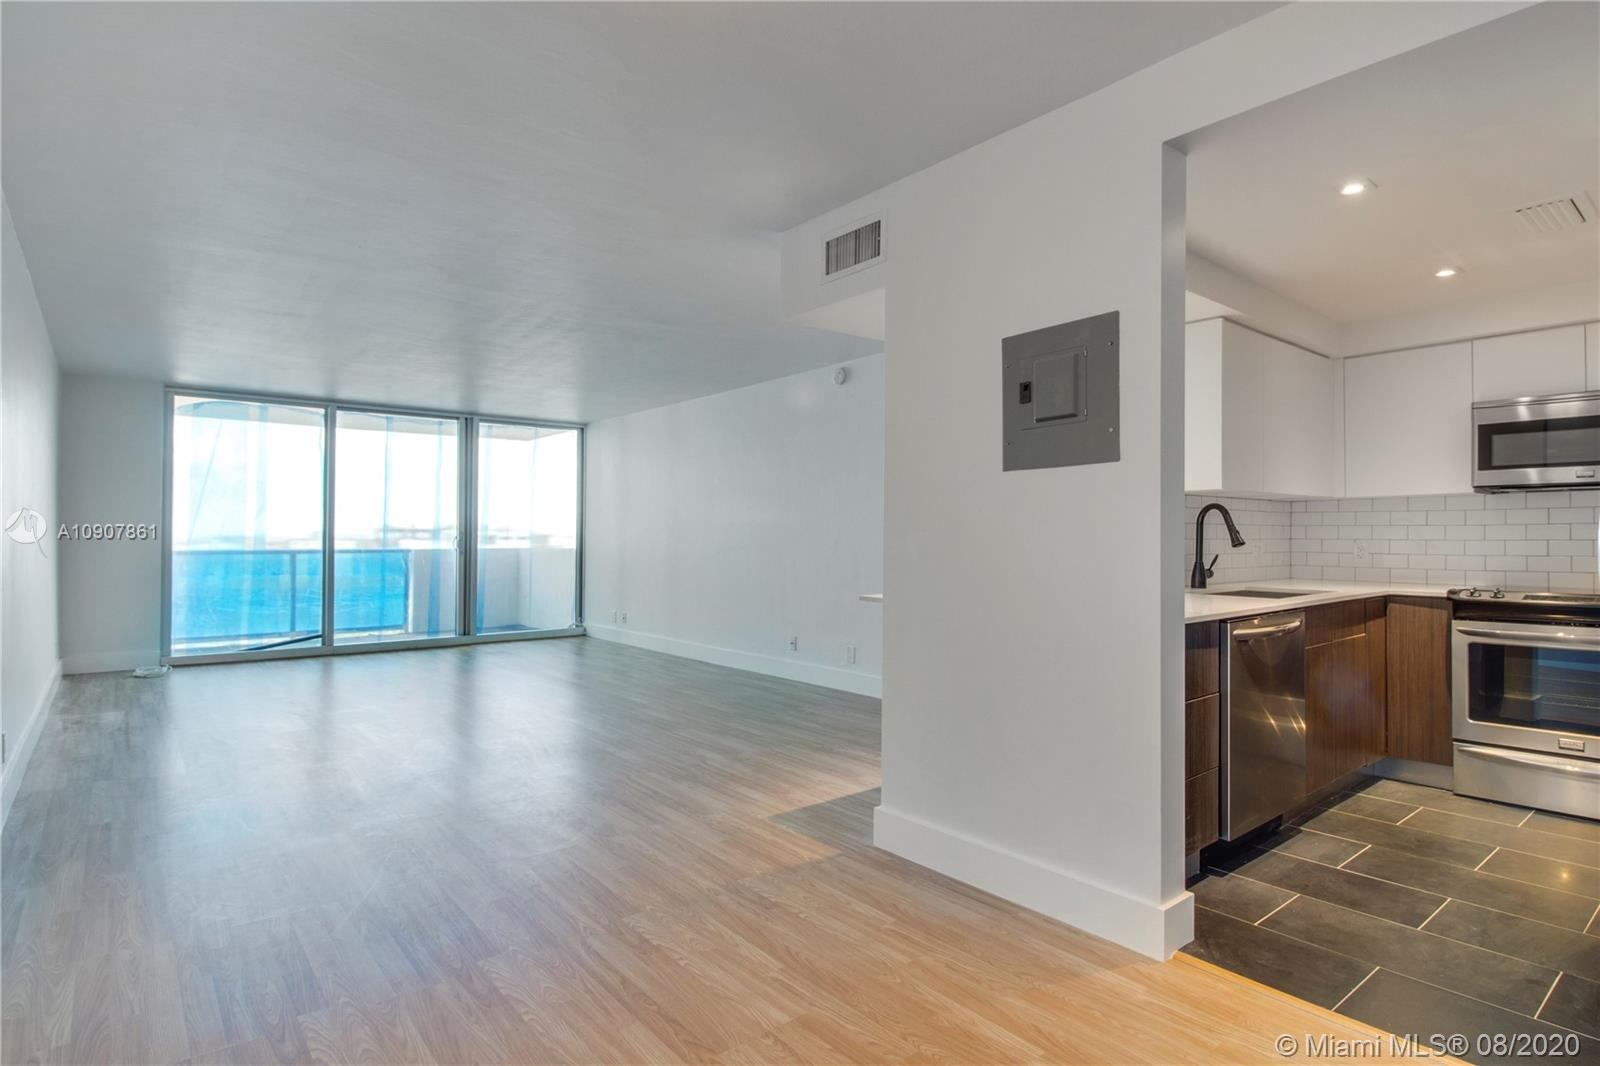 Mirador North #1017 - 1200 West Ave #1017, Miami Beach, FL 33139